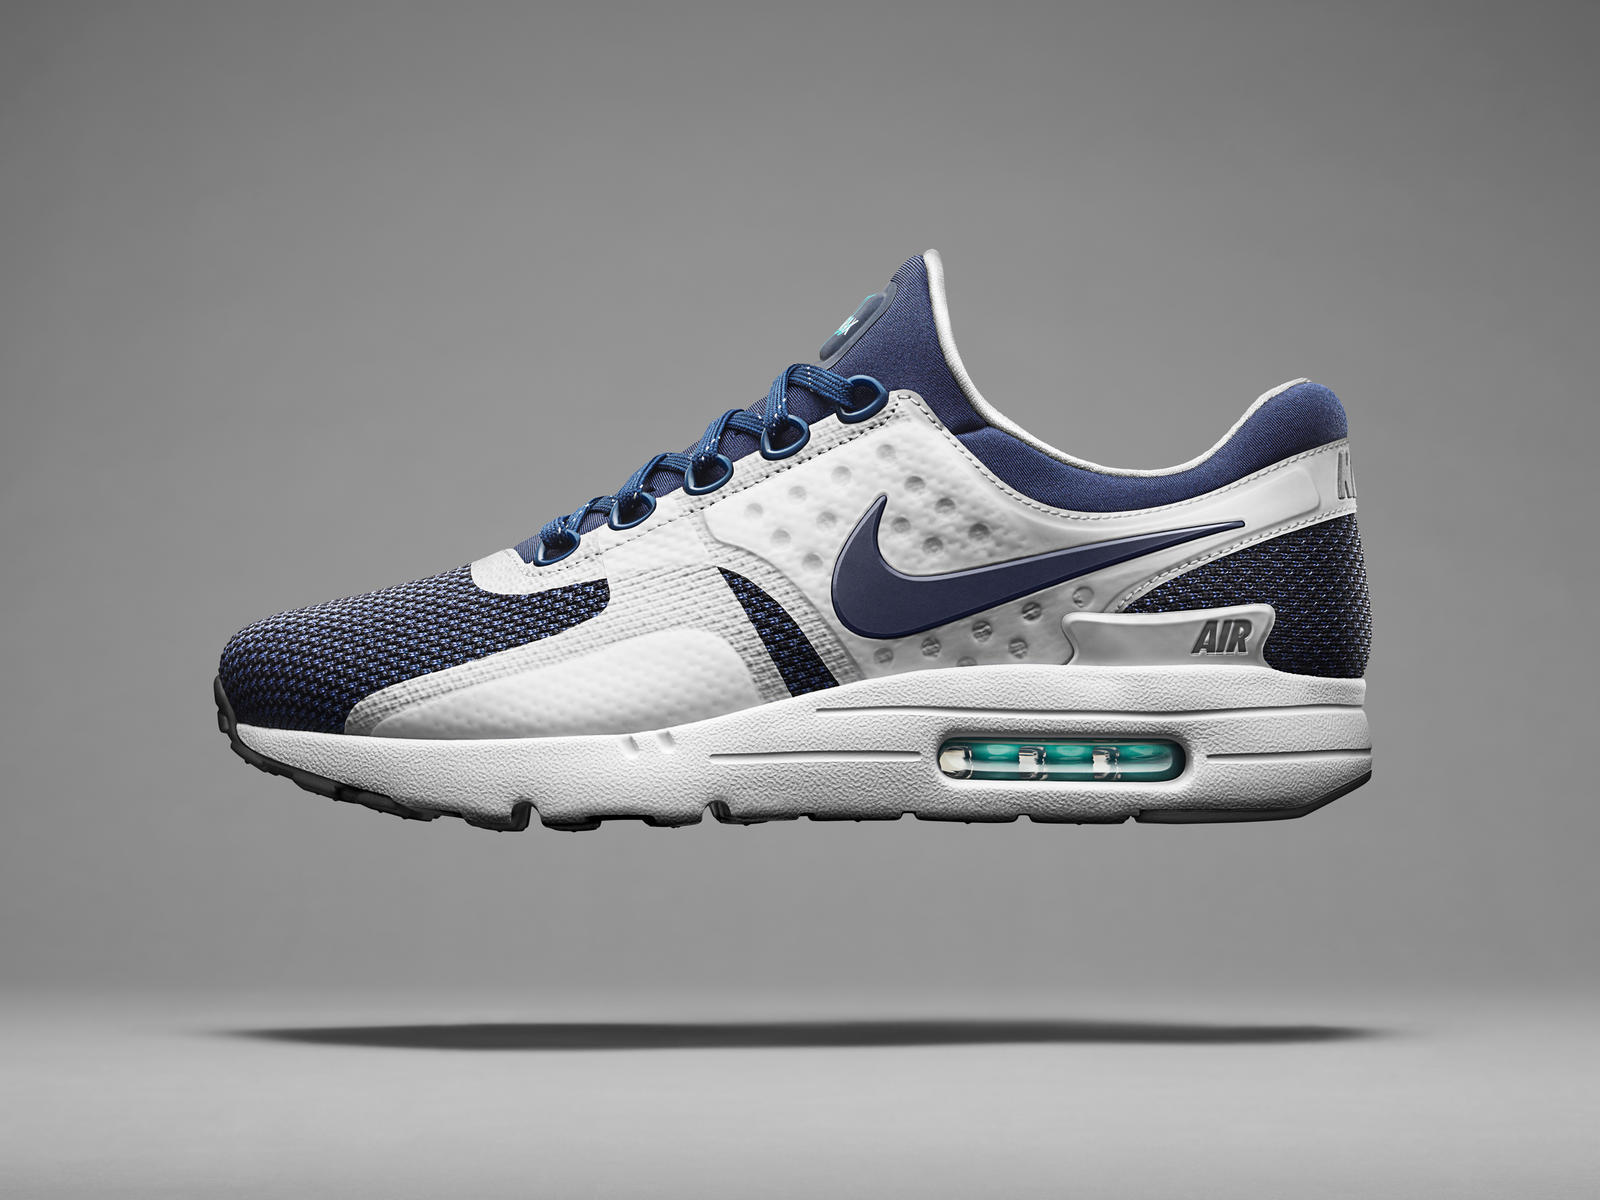 check-out 0f939 54ca7 From Zero to 1: The Tale of the First Air Max - Nike News